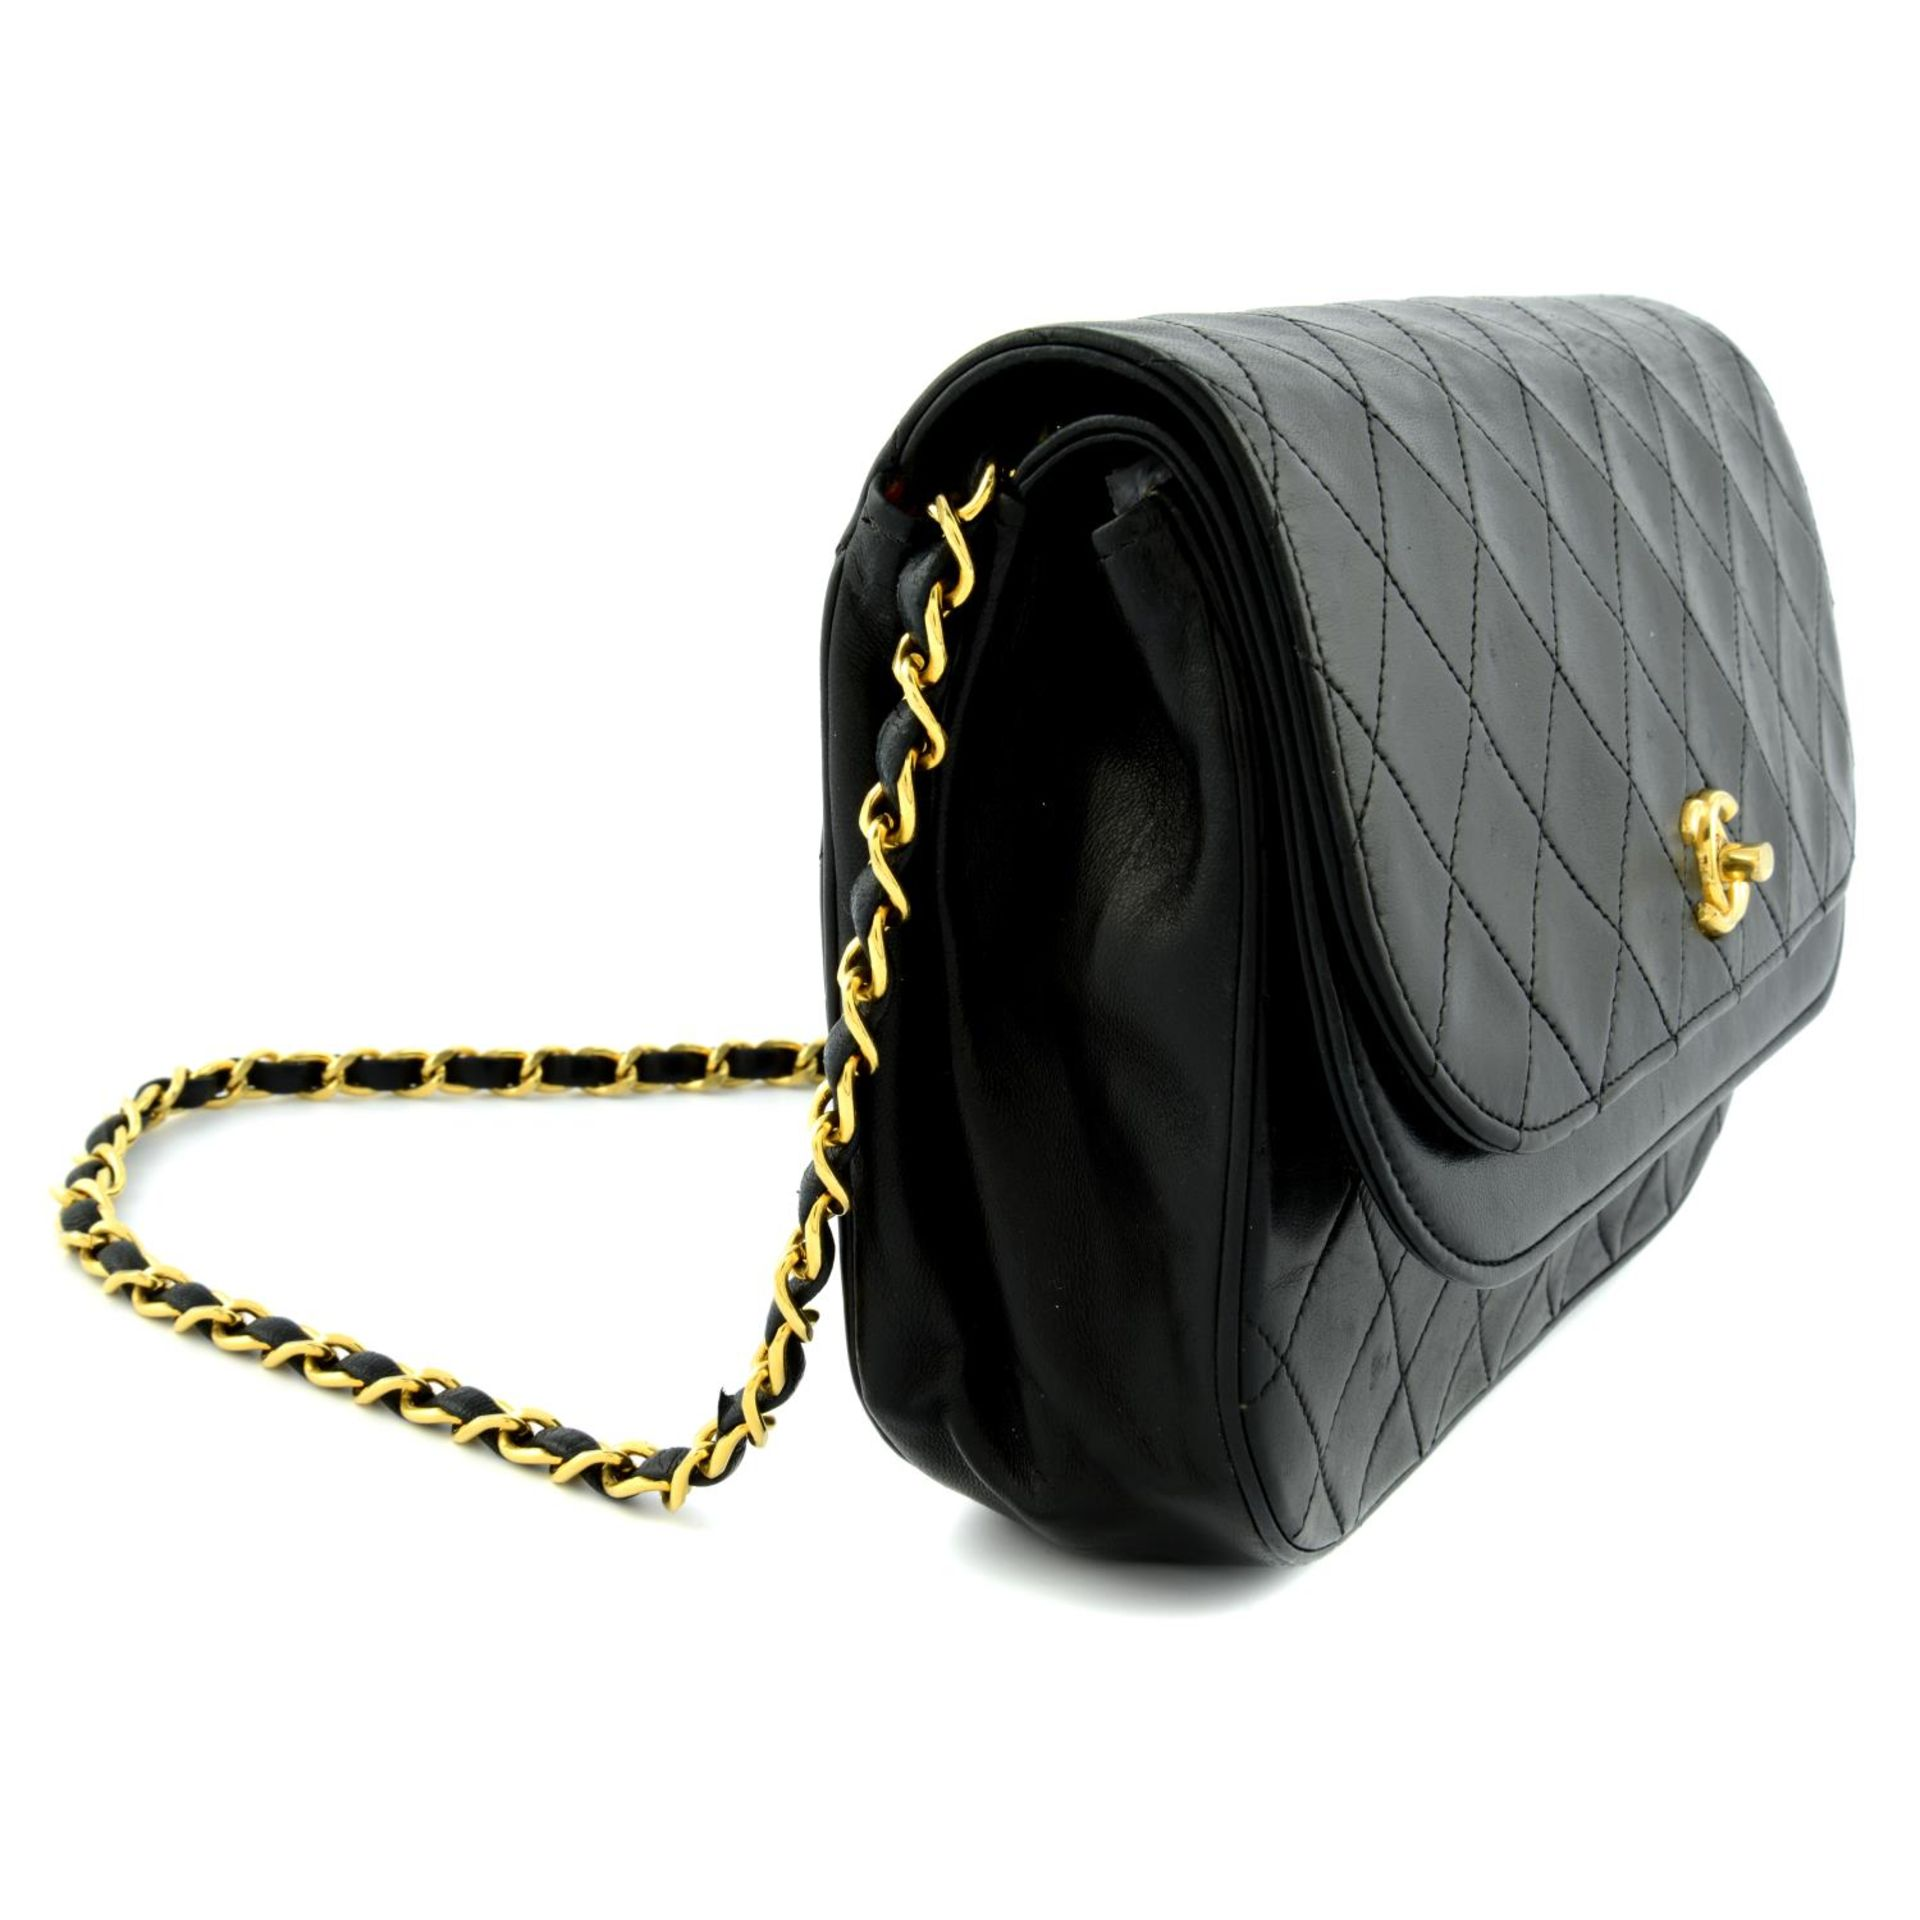 CHANEL - a leather double flap handbag. - Image 4 of 5